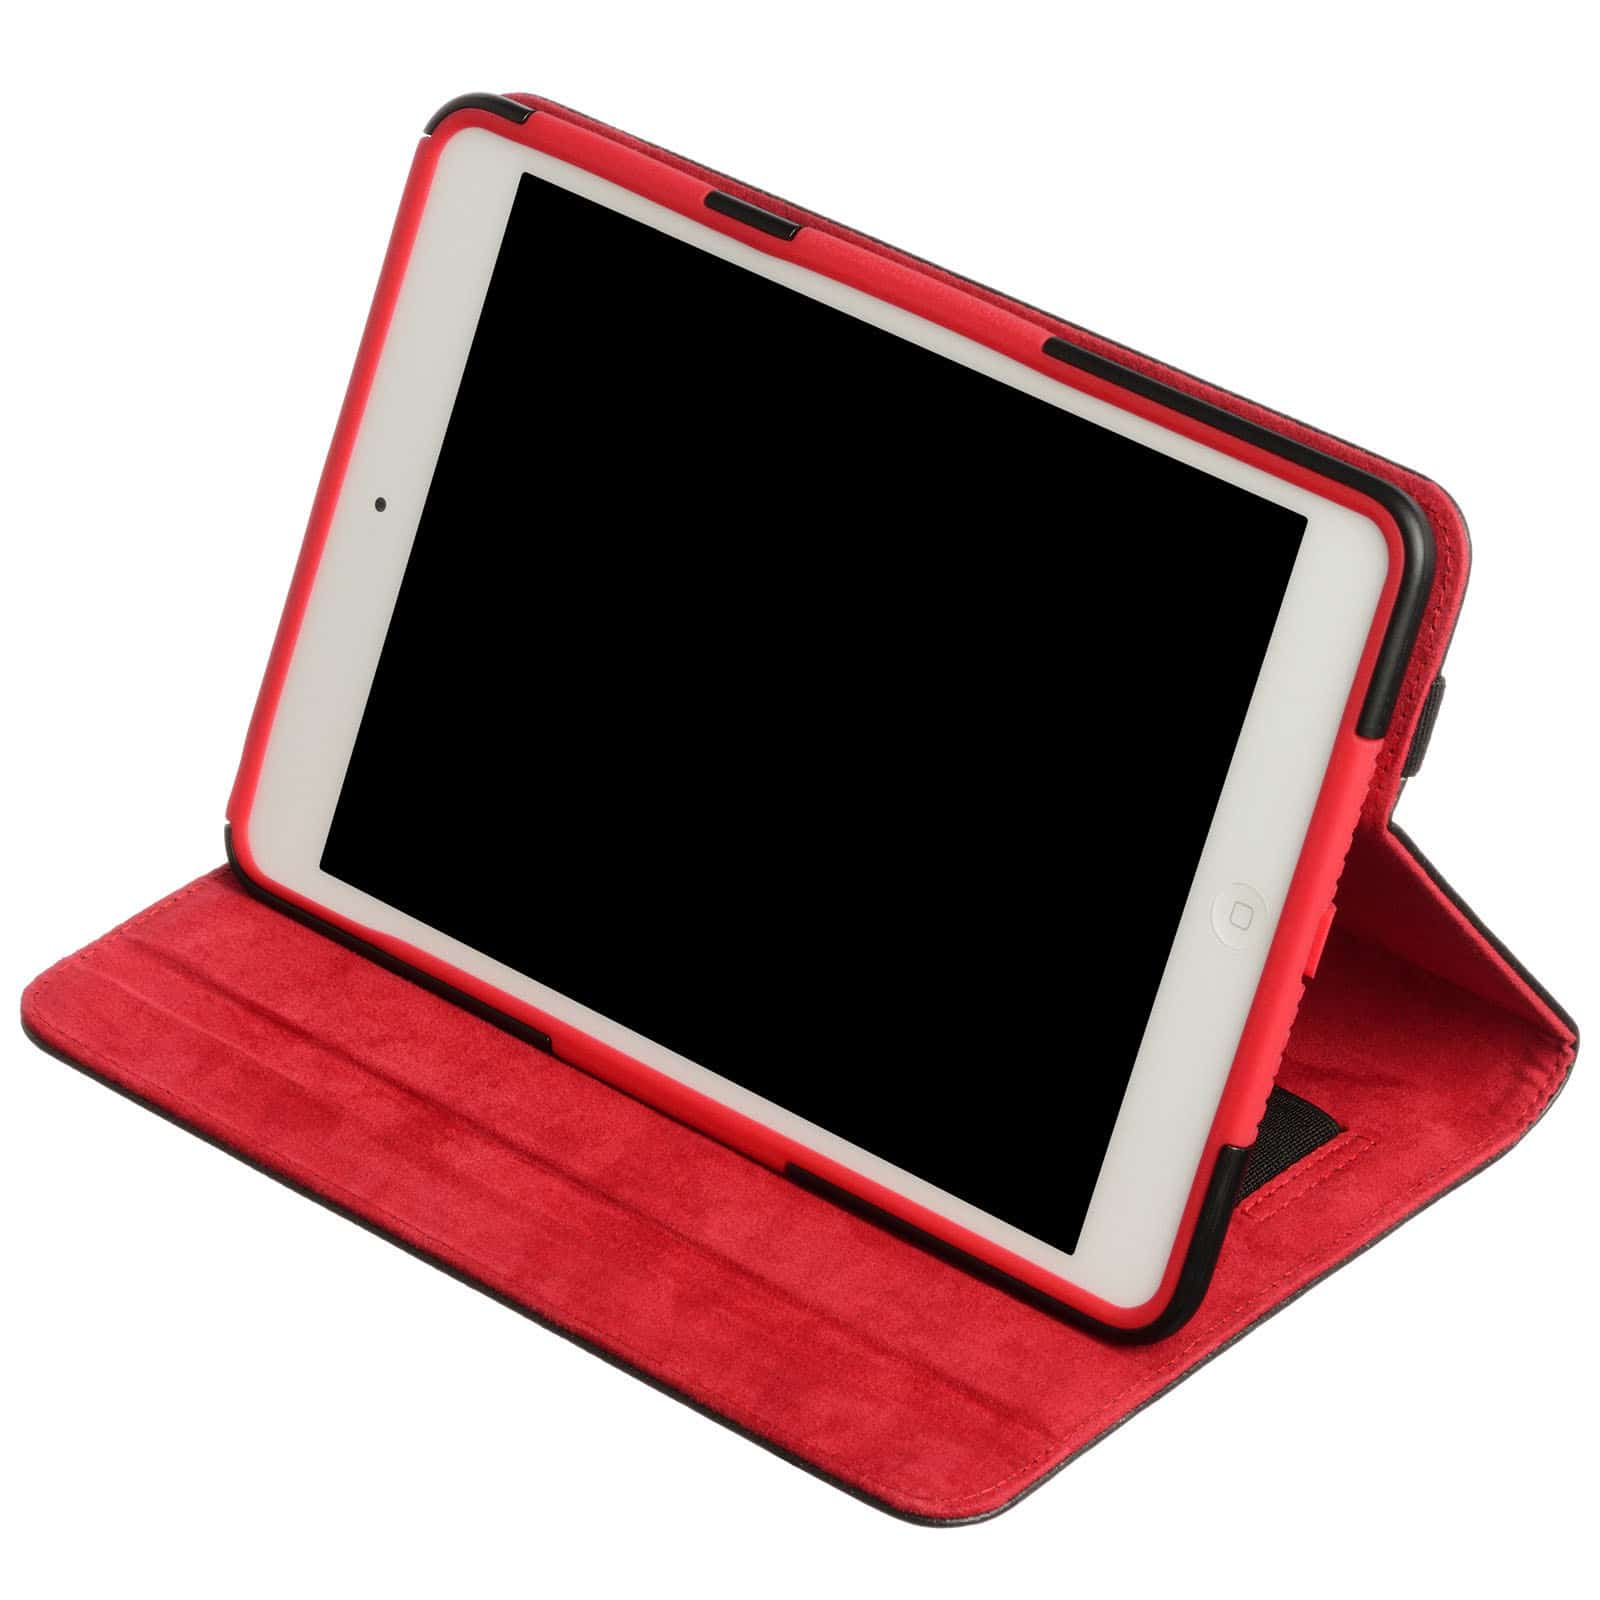 Kujali case for iPad mini